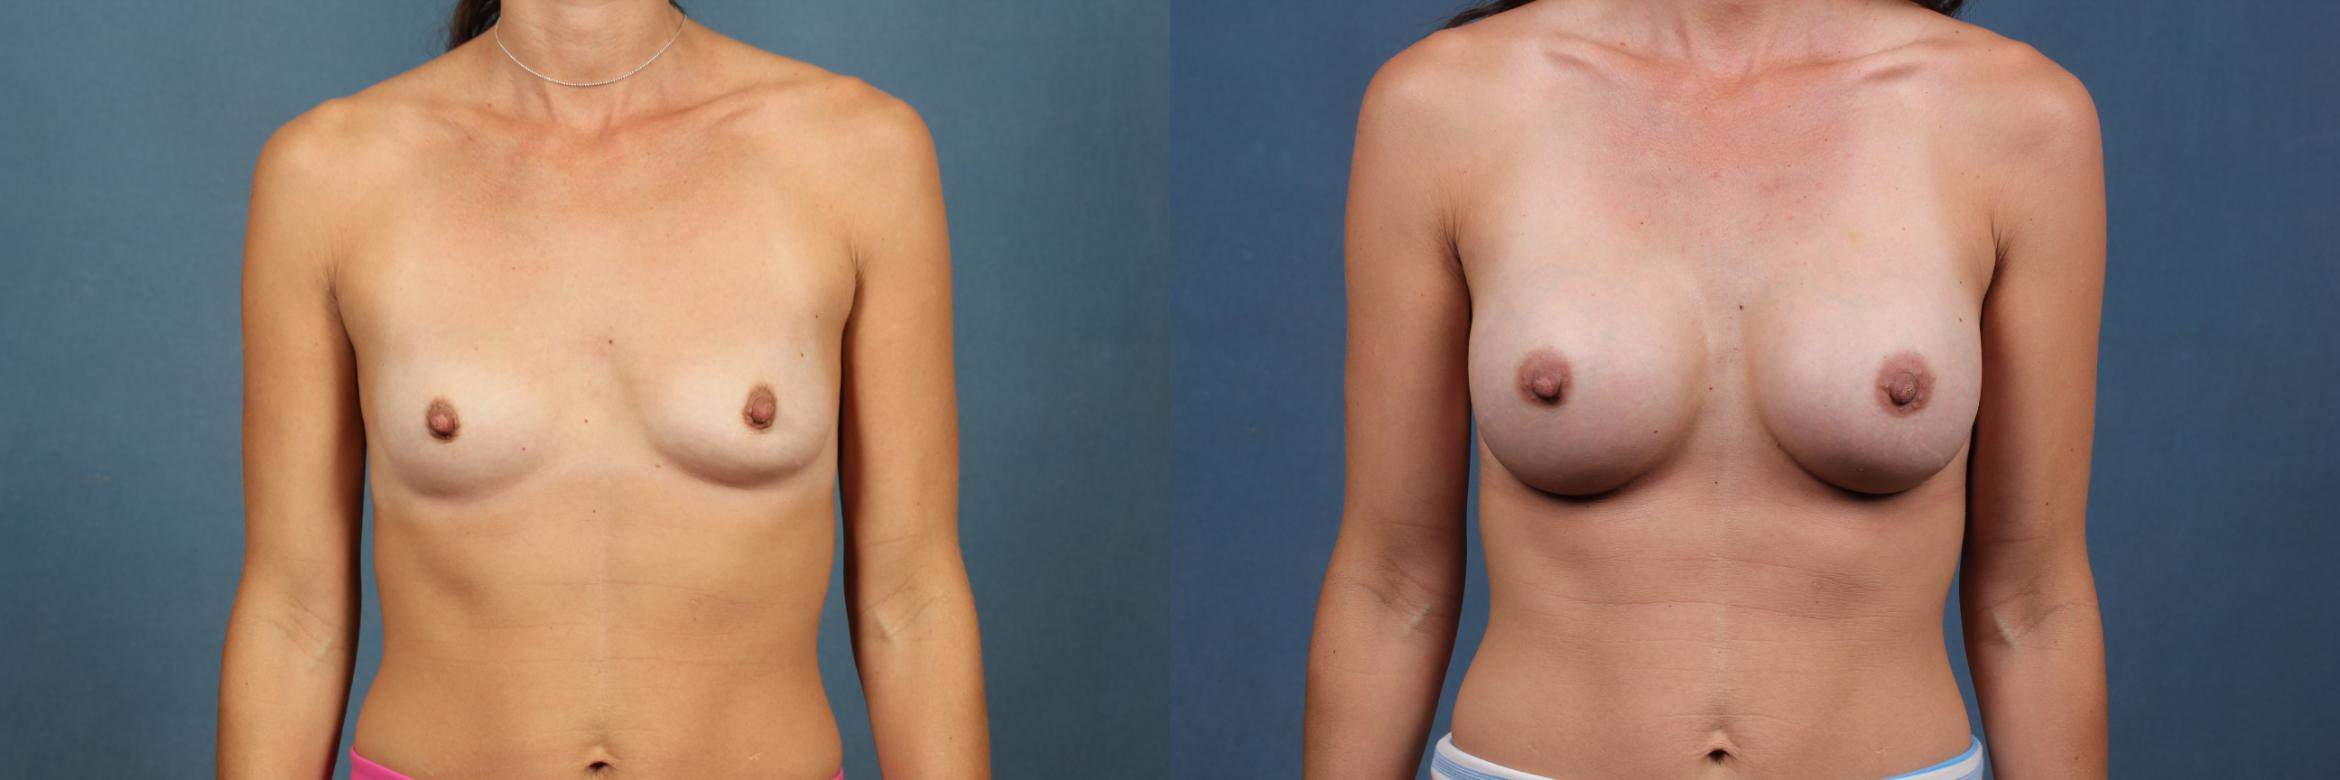 Enlargement - Silicone Case 323 Before & After View #1 | Louisville, KY | CaloAesthetics® Plastic Surgery Center